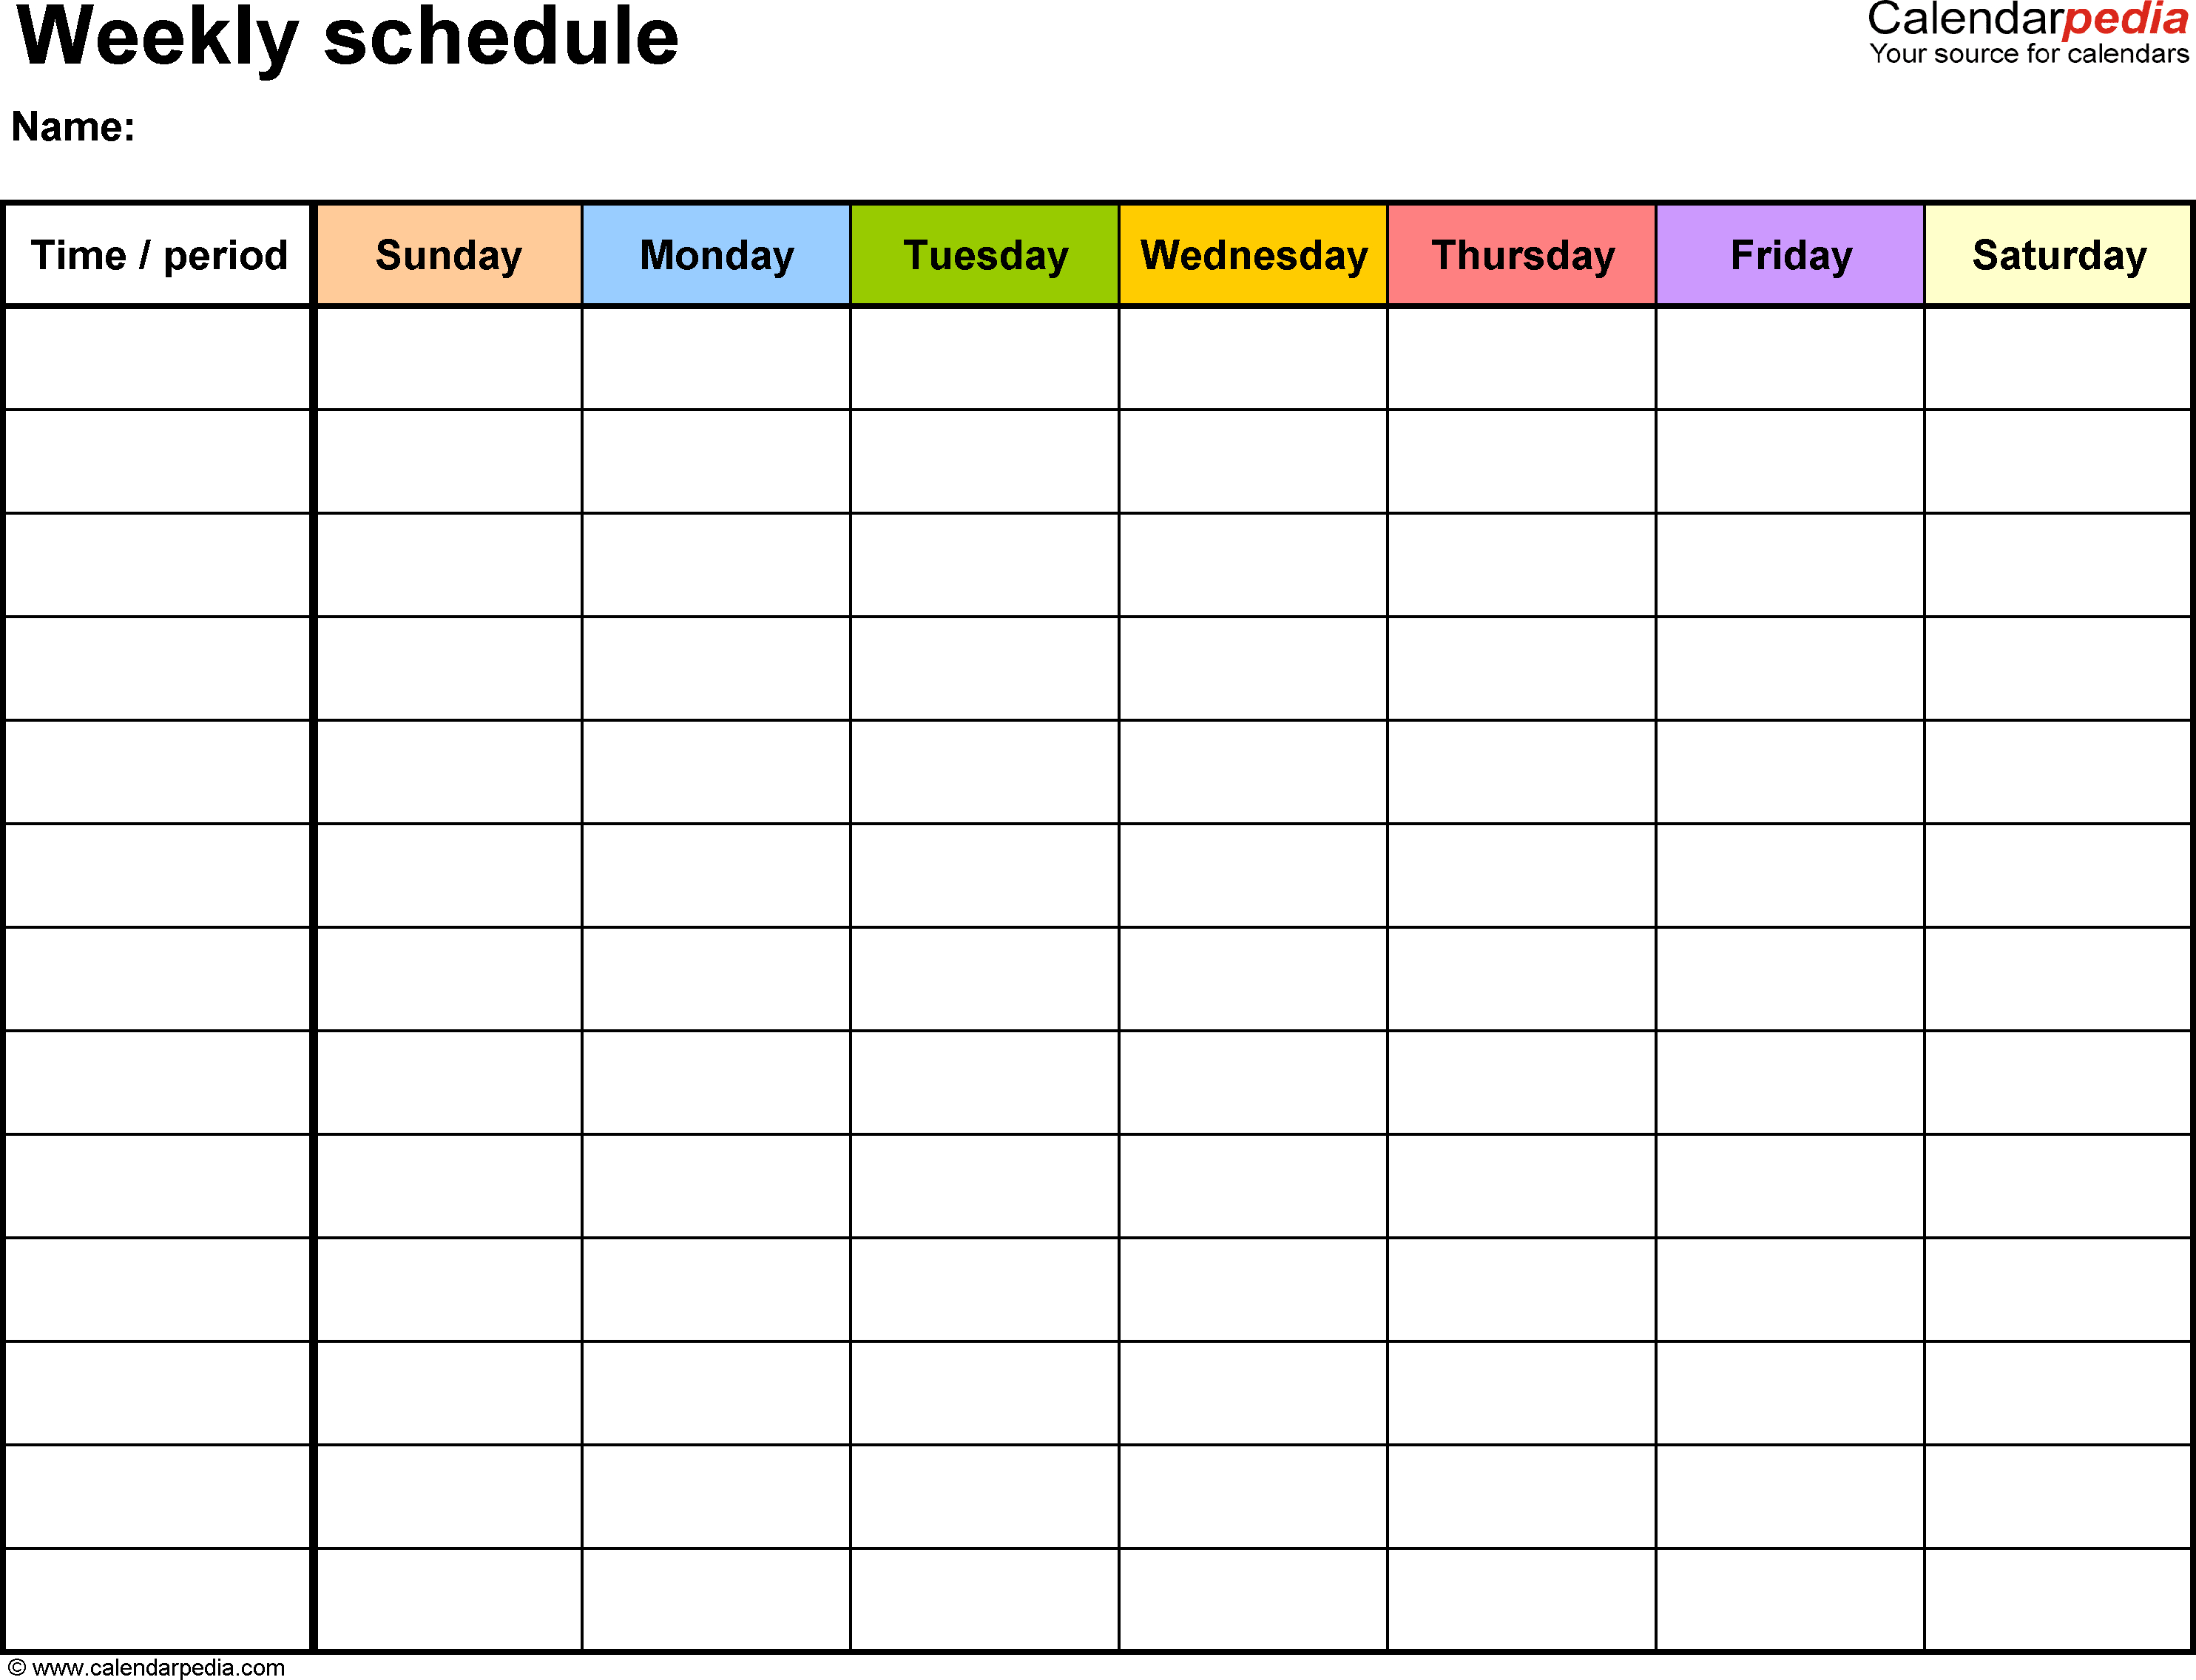 Free Weekly Schedule Templates For Excel - 18 Templates intended for Cute Blank Calendar Page Template